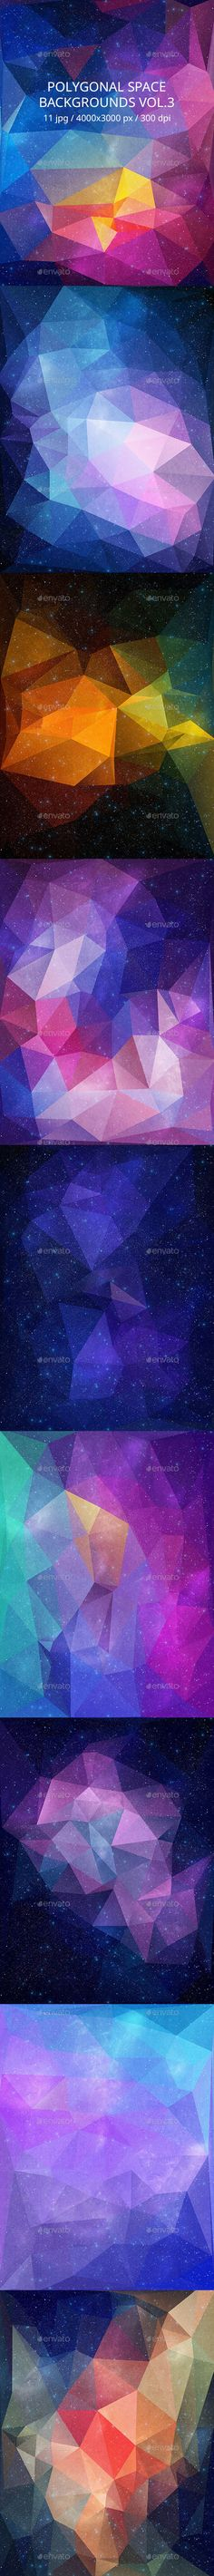 11 Polygonal Space Backgrounds. Download here: http://graphicriver.net/item/polygonal-space-backgrounds-vol3/10936737?ref=ksioks